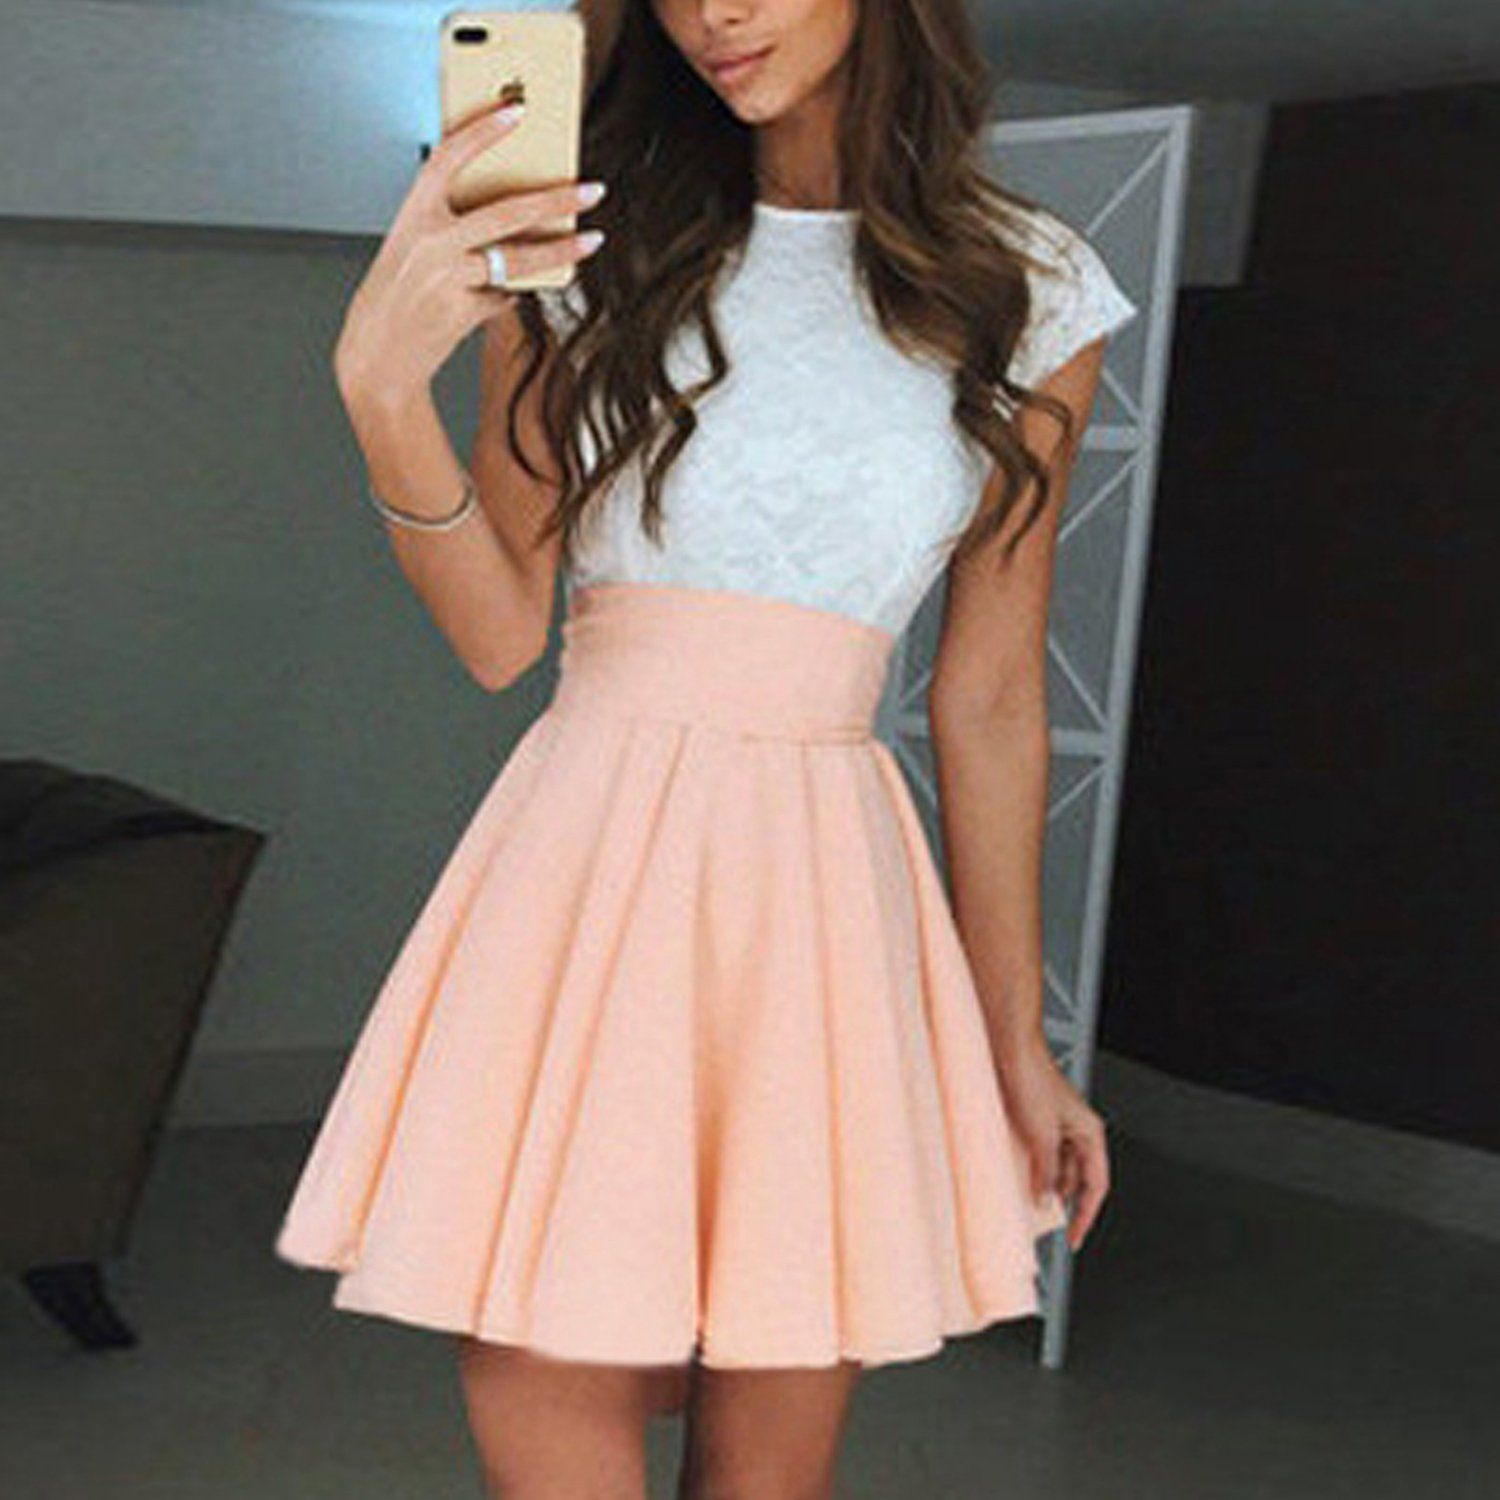 Mia Cute Lace Top High Waisted Skater Skirt Mini Dress Pretty Dresses For Teens Casual Dresses For Teens Dresses For Teens [ 1500 x 1500 Pixel ]